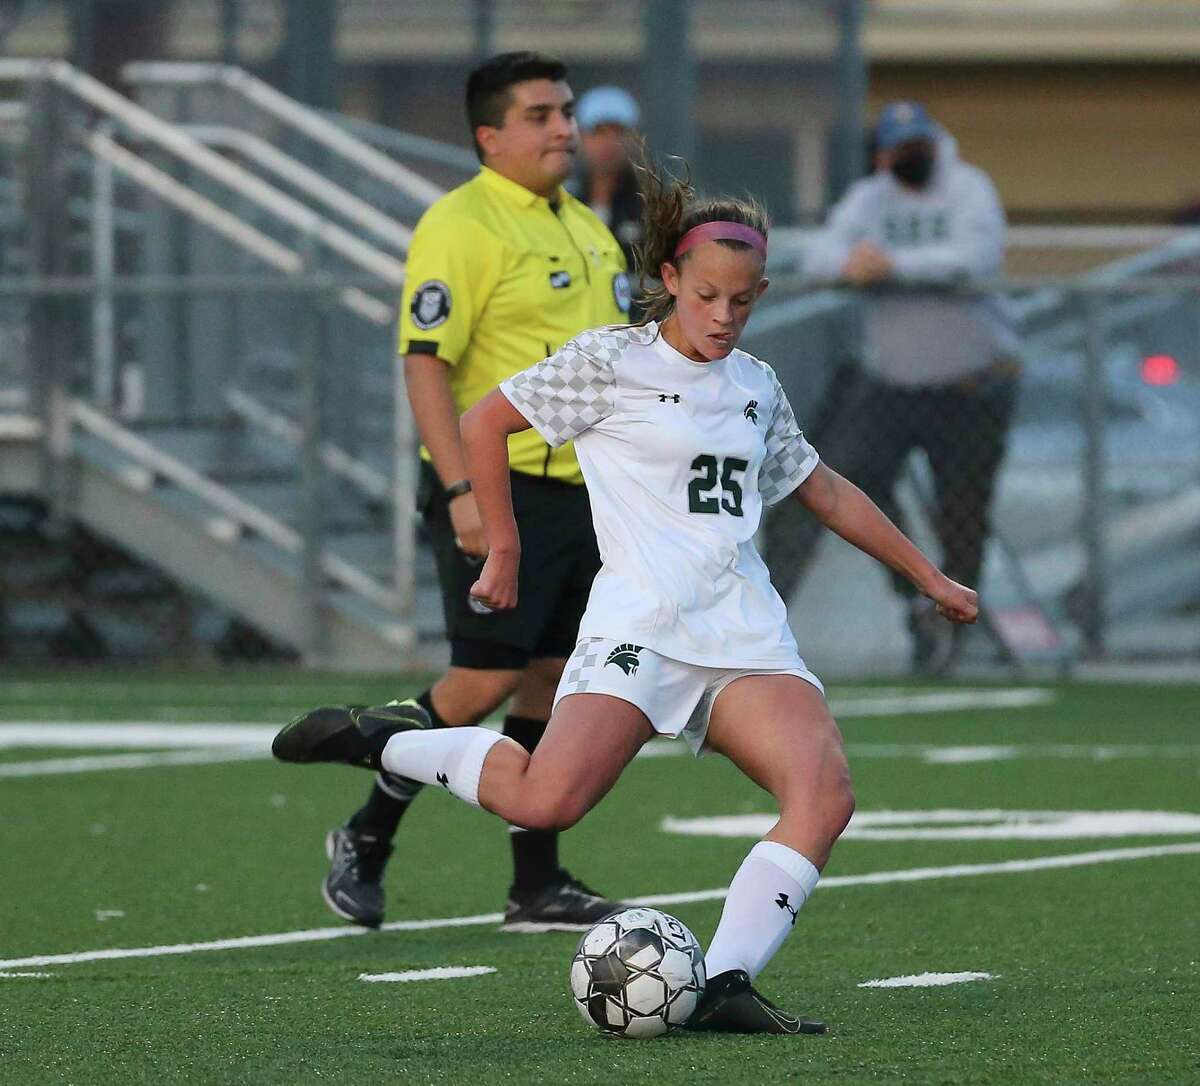 Stratford Spartans forward Rileigh Toner takes a free kick and scores during the second half of the conference 6A regional quarterfinal match against Memorial Mustangs Thursday, April 1, 2021, at Spring Woods High School in Houston.